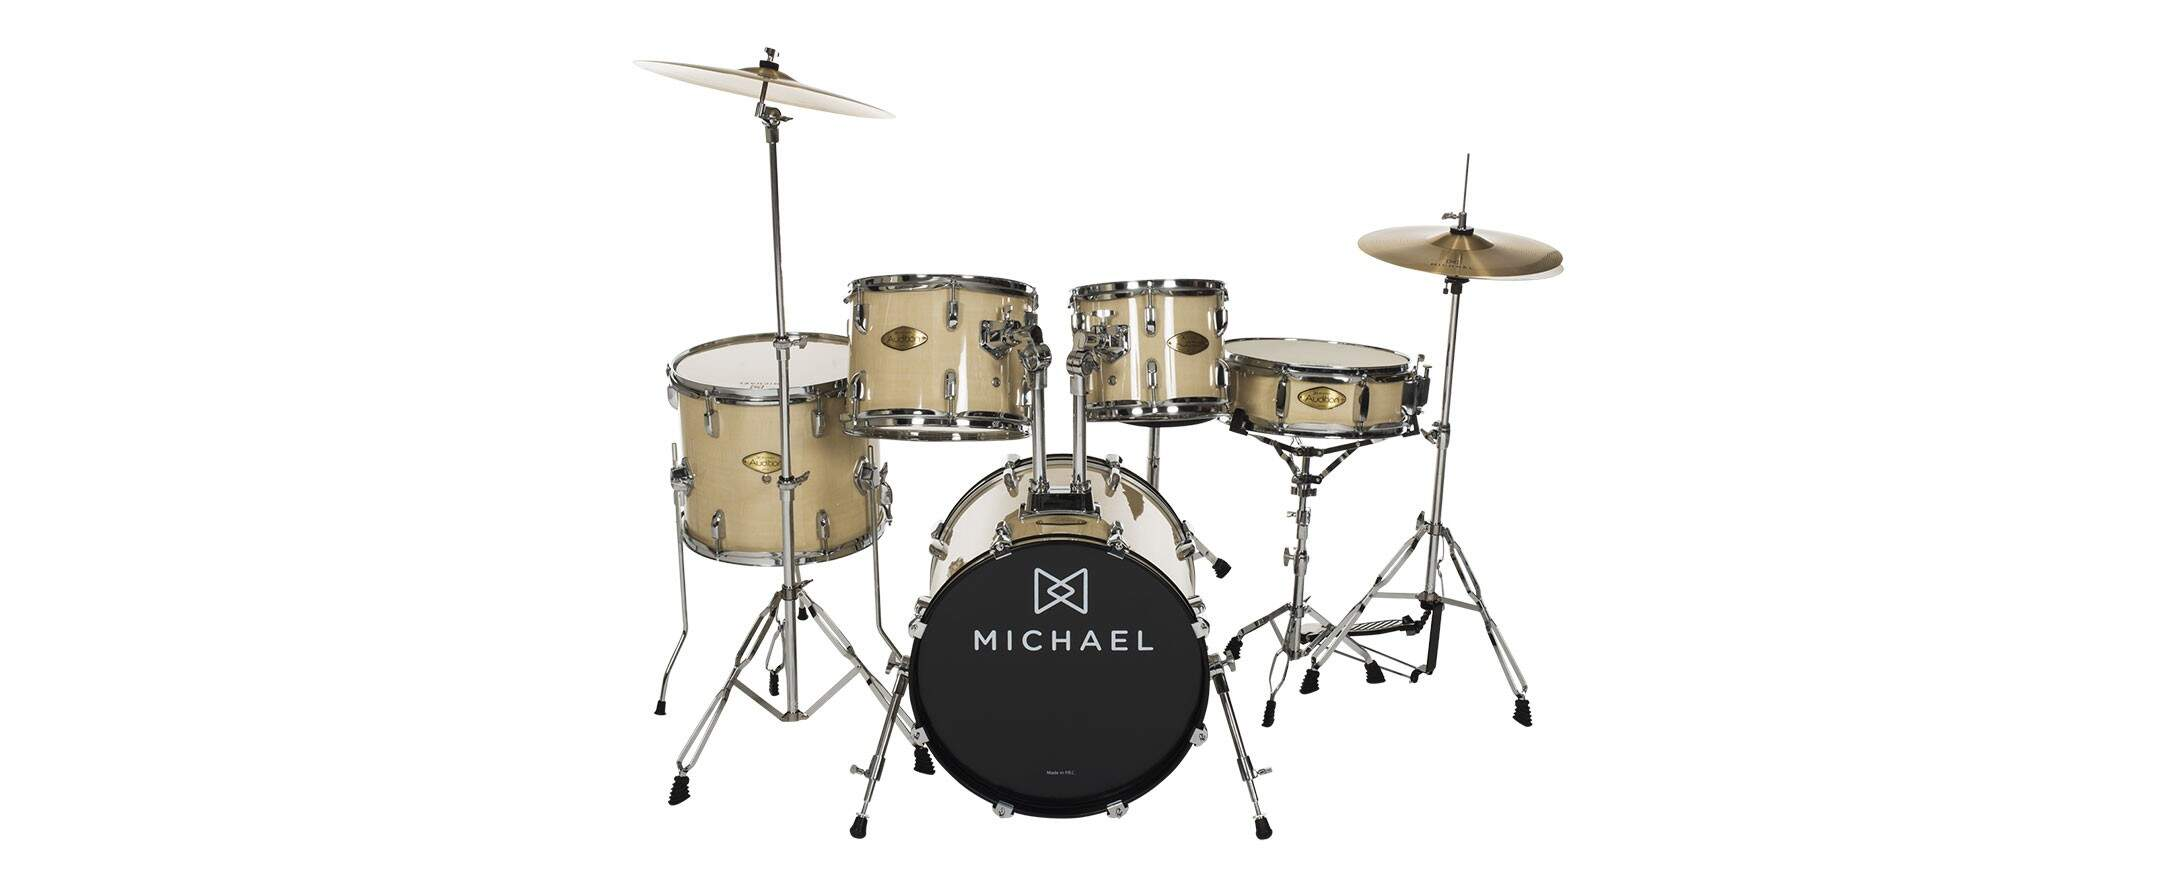 Bateria Michael Audition DM828N 22 10 12 16 14 NA